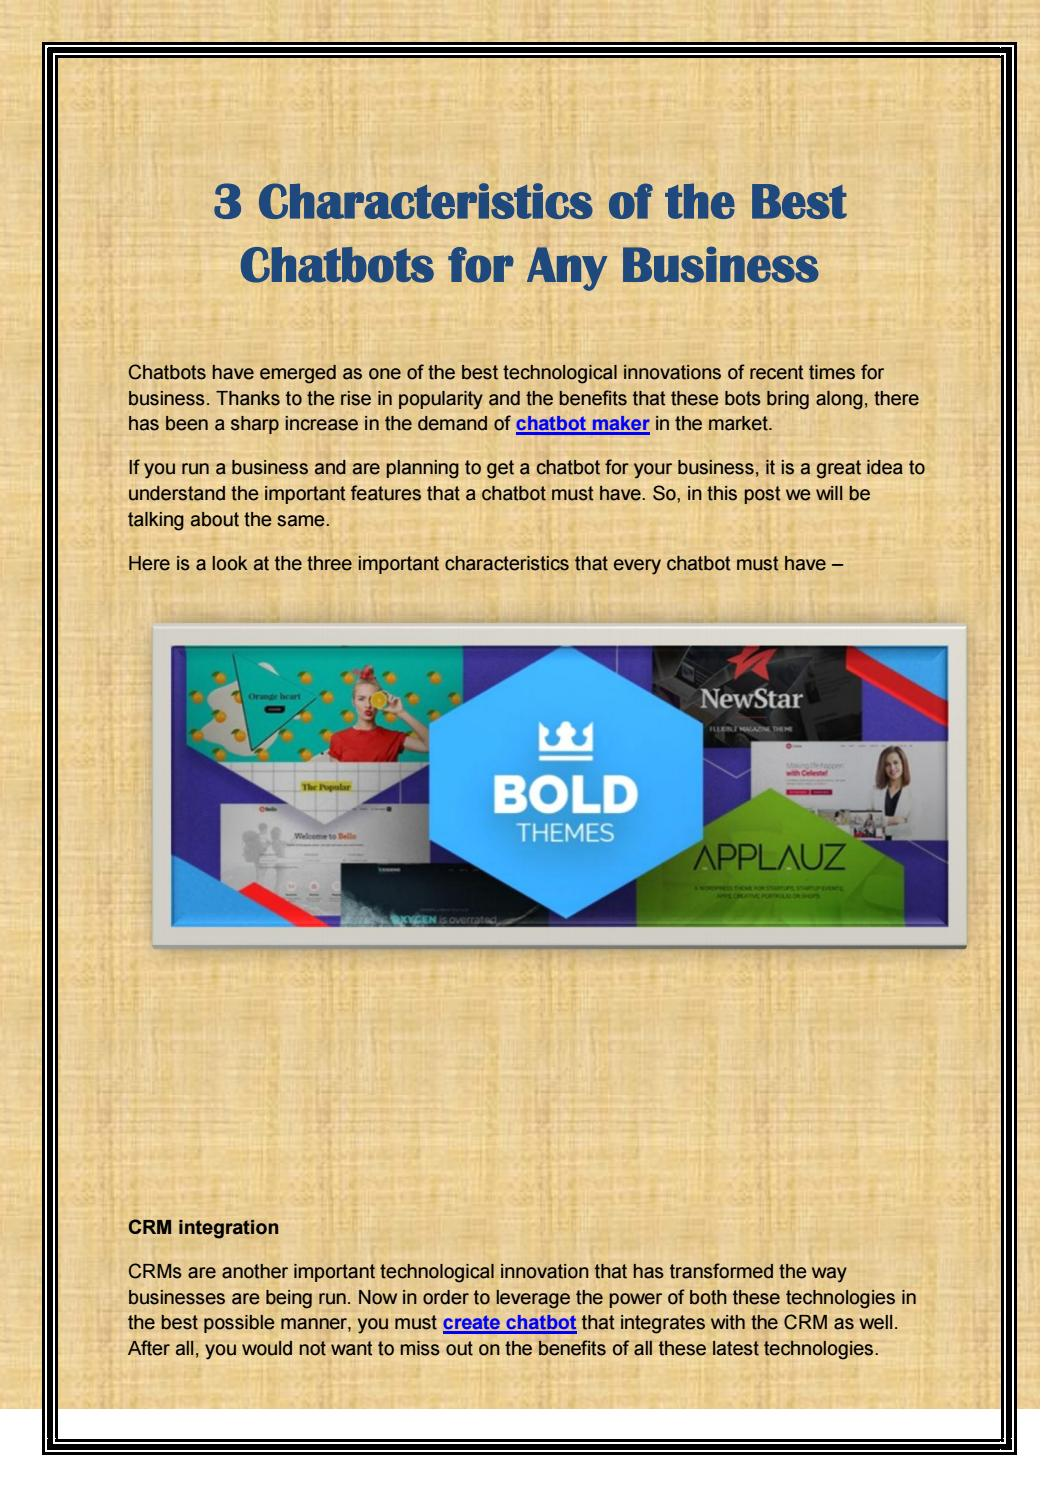 3 Characteristics of the Best Chatbots for Any Business by